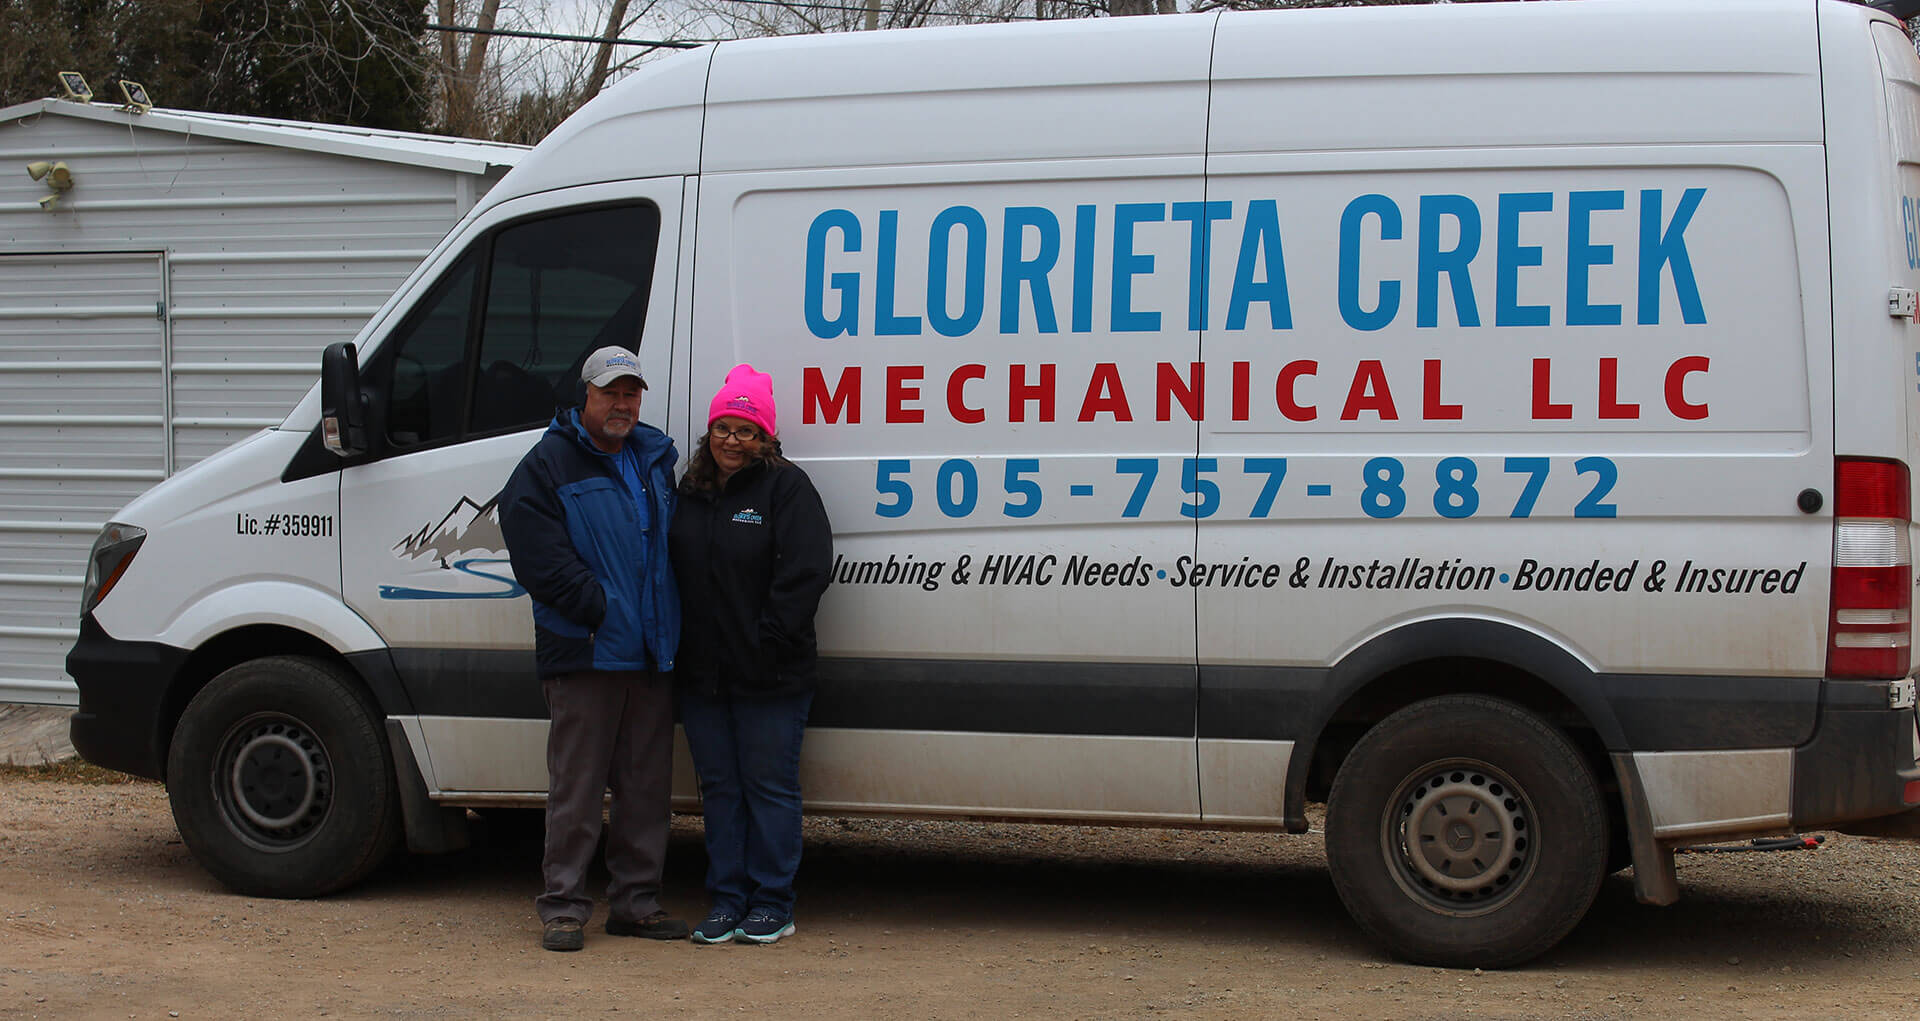 Glorieta Creek Mechanical